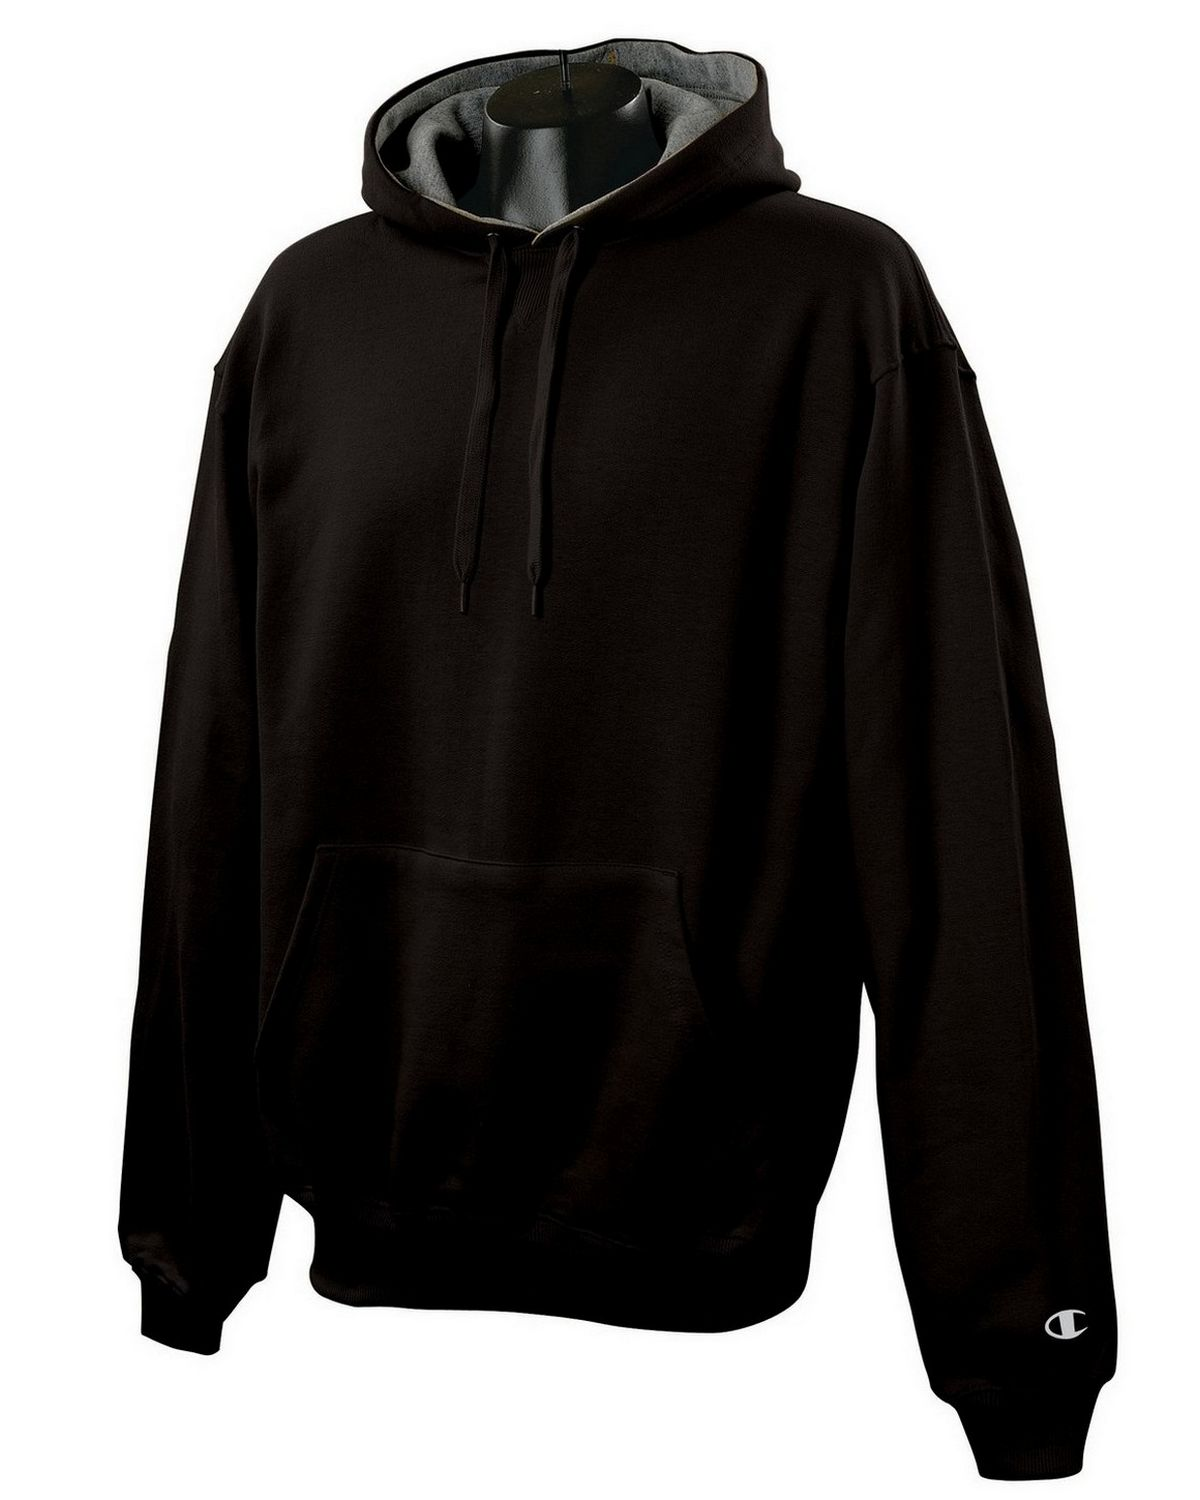 Champion S1781 Cotton Max Pullover Hood - Black/Granite Heather - XL S1781